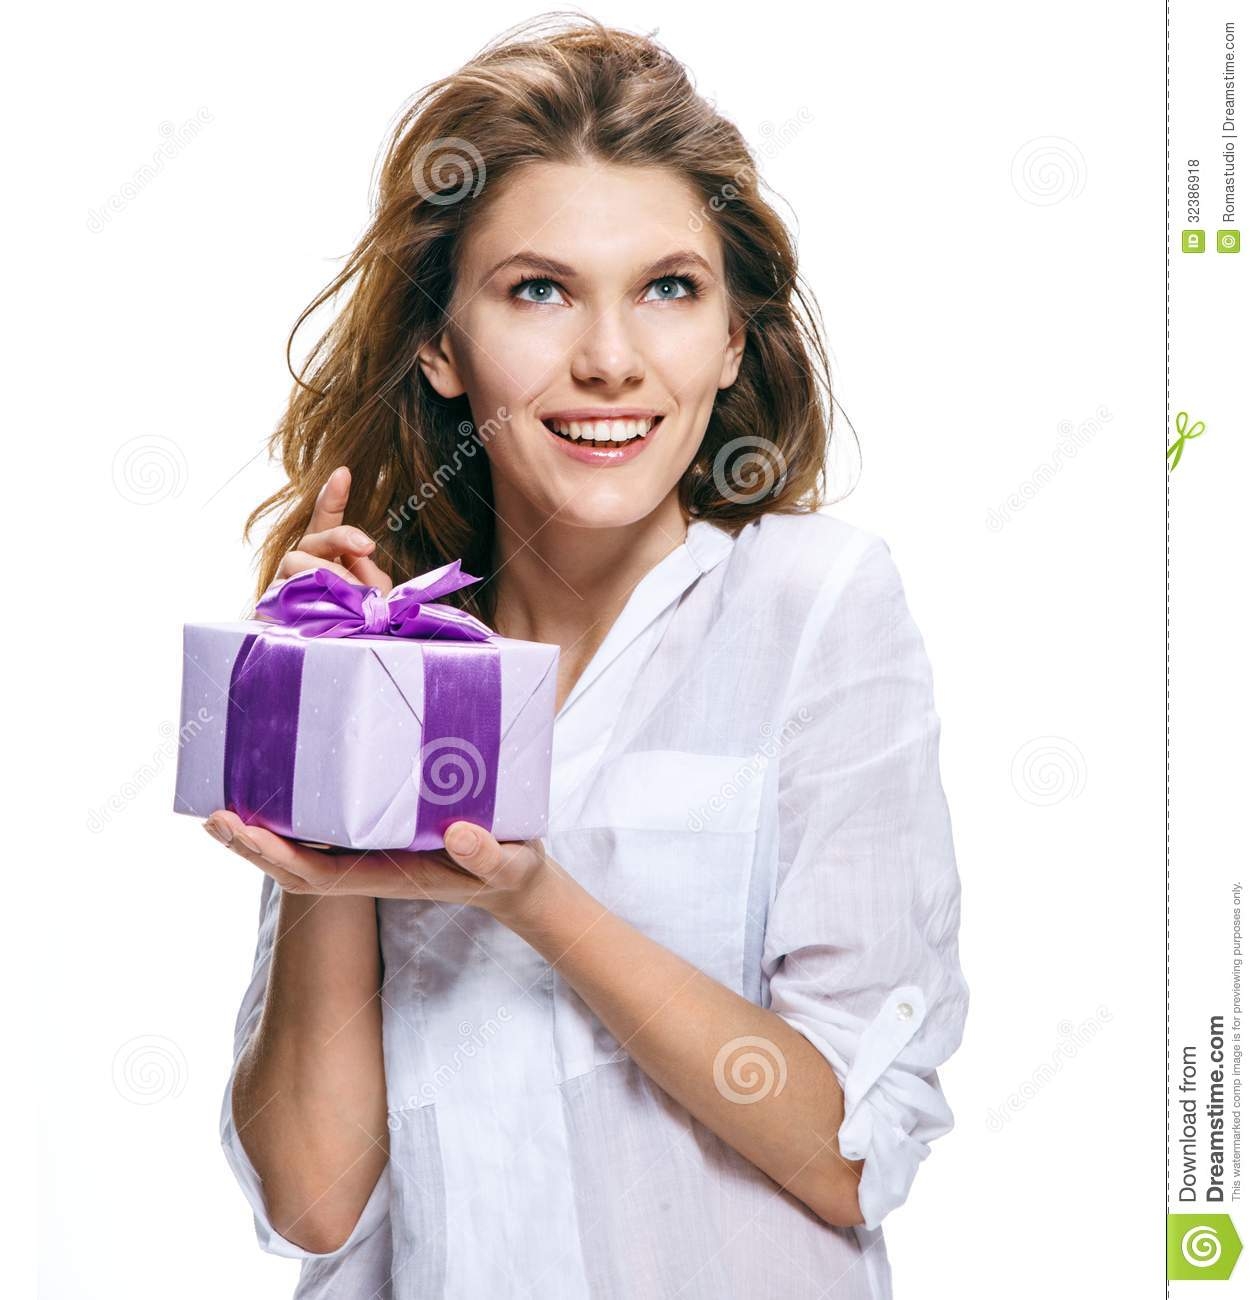 Young beautiful woman with gift in box isolated on white background